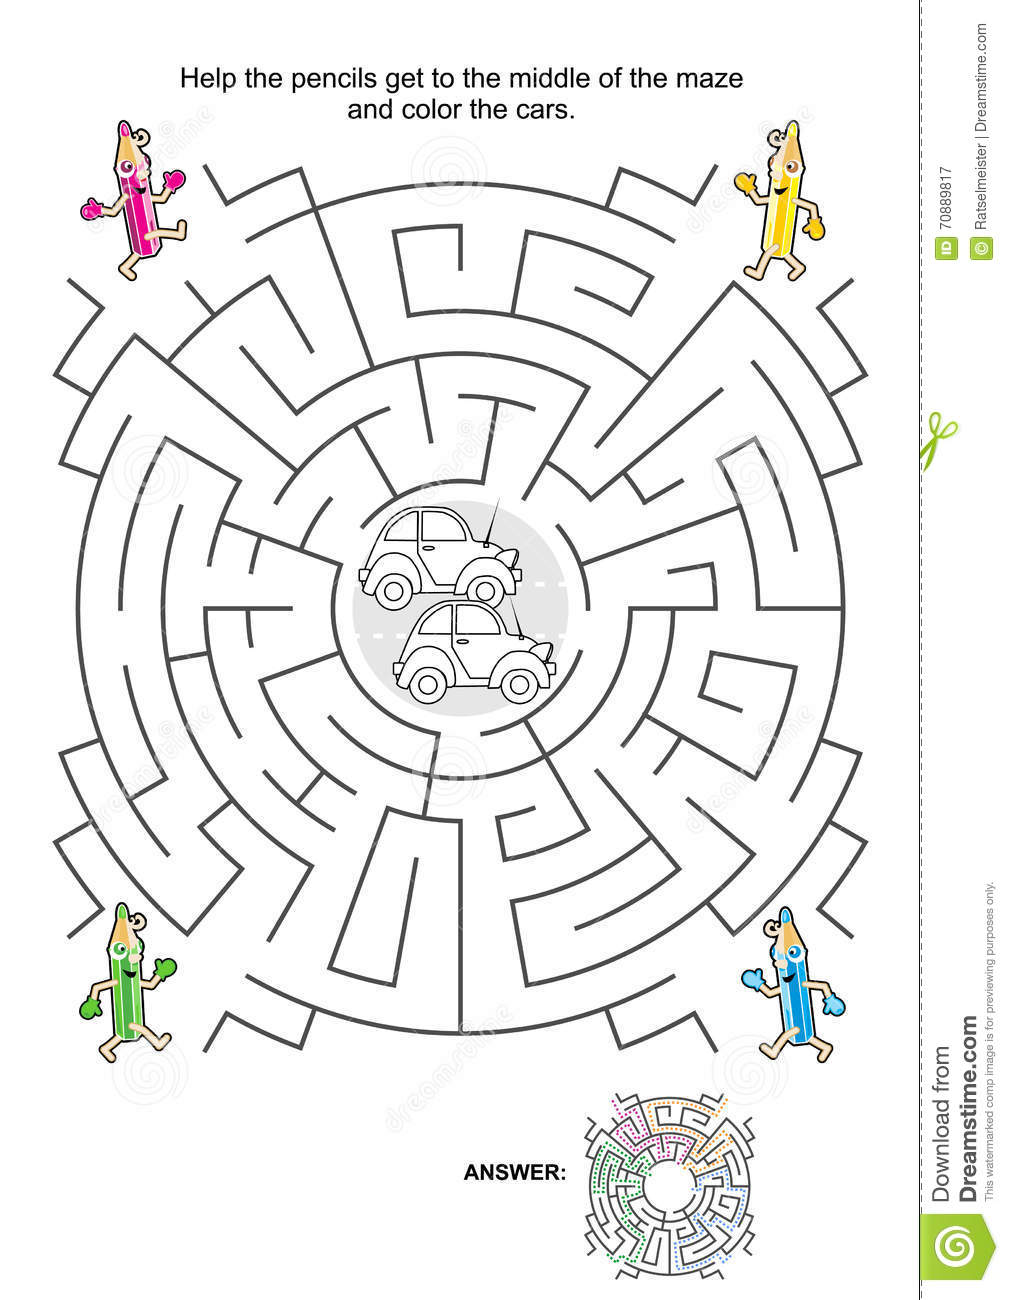 Stock Illustration Maze Game Kids Cars Pencils Coloring Help Get To Middle Color Answer Included Image70889817 on Homeschooling Worksheets For Kindergarten